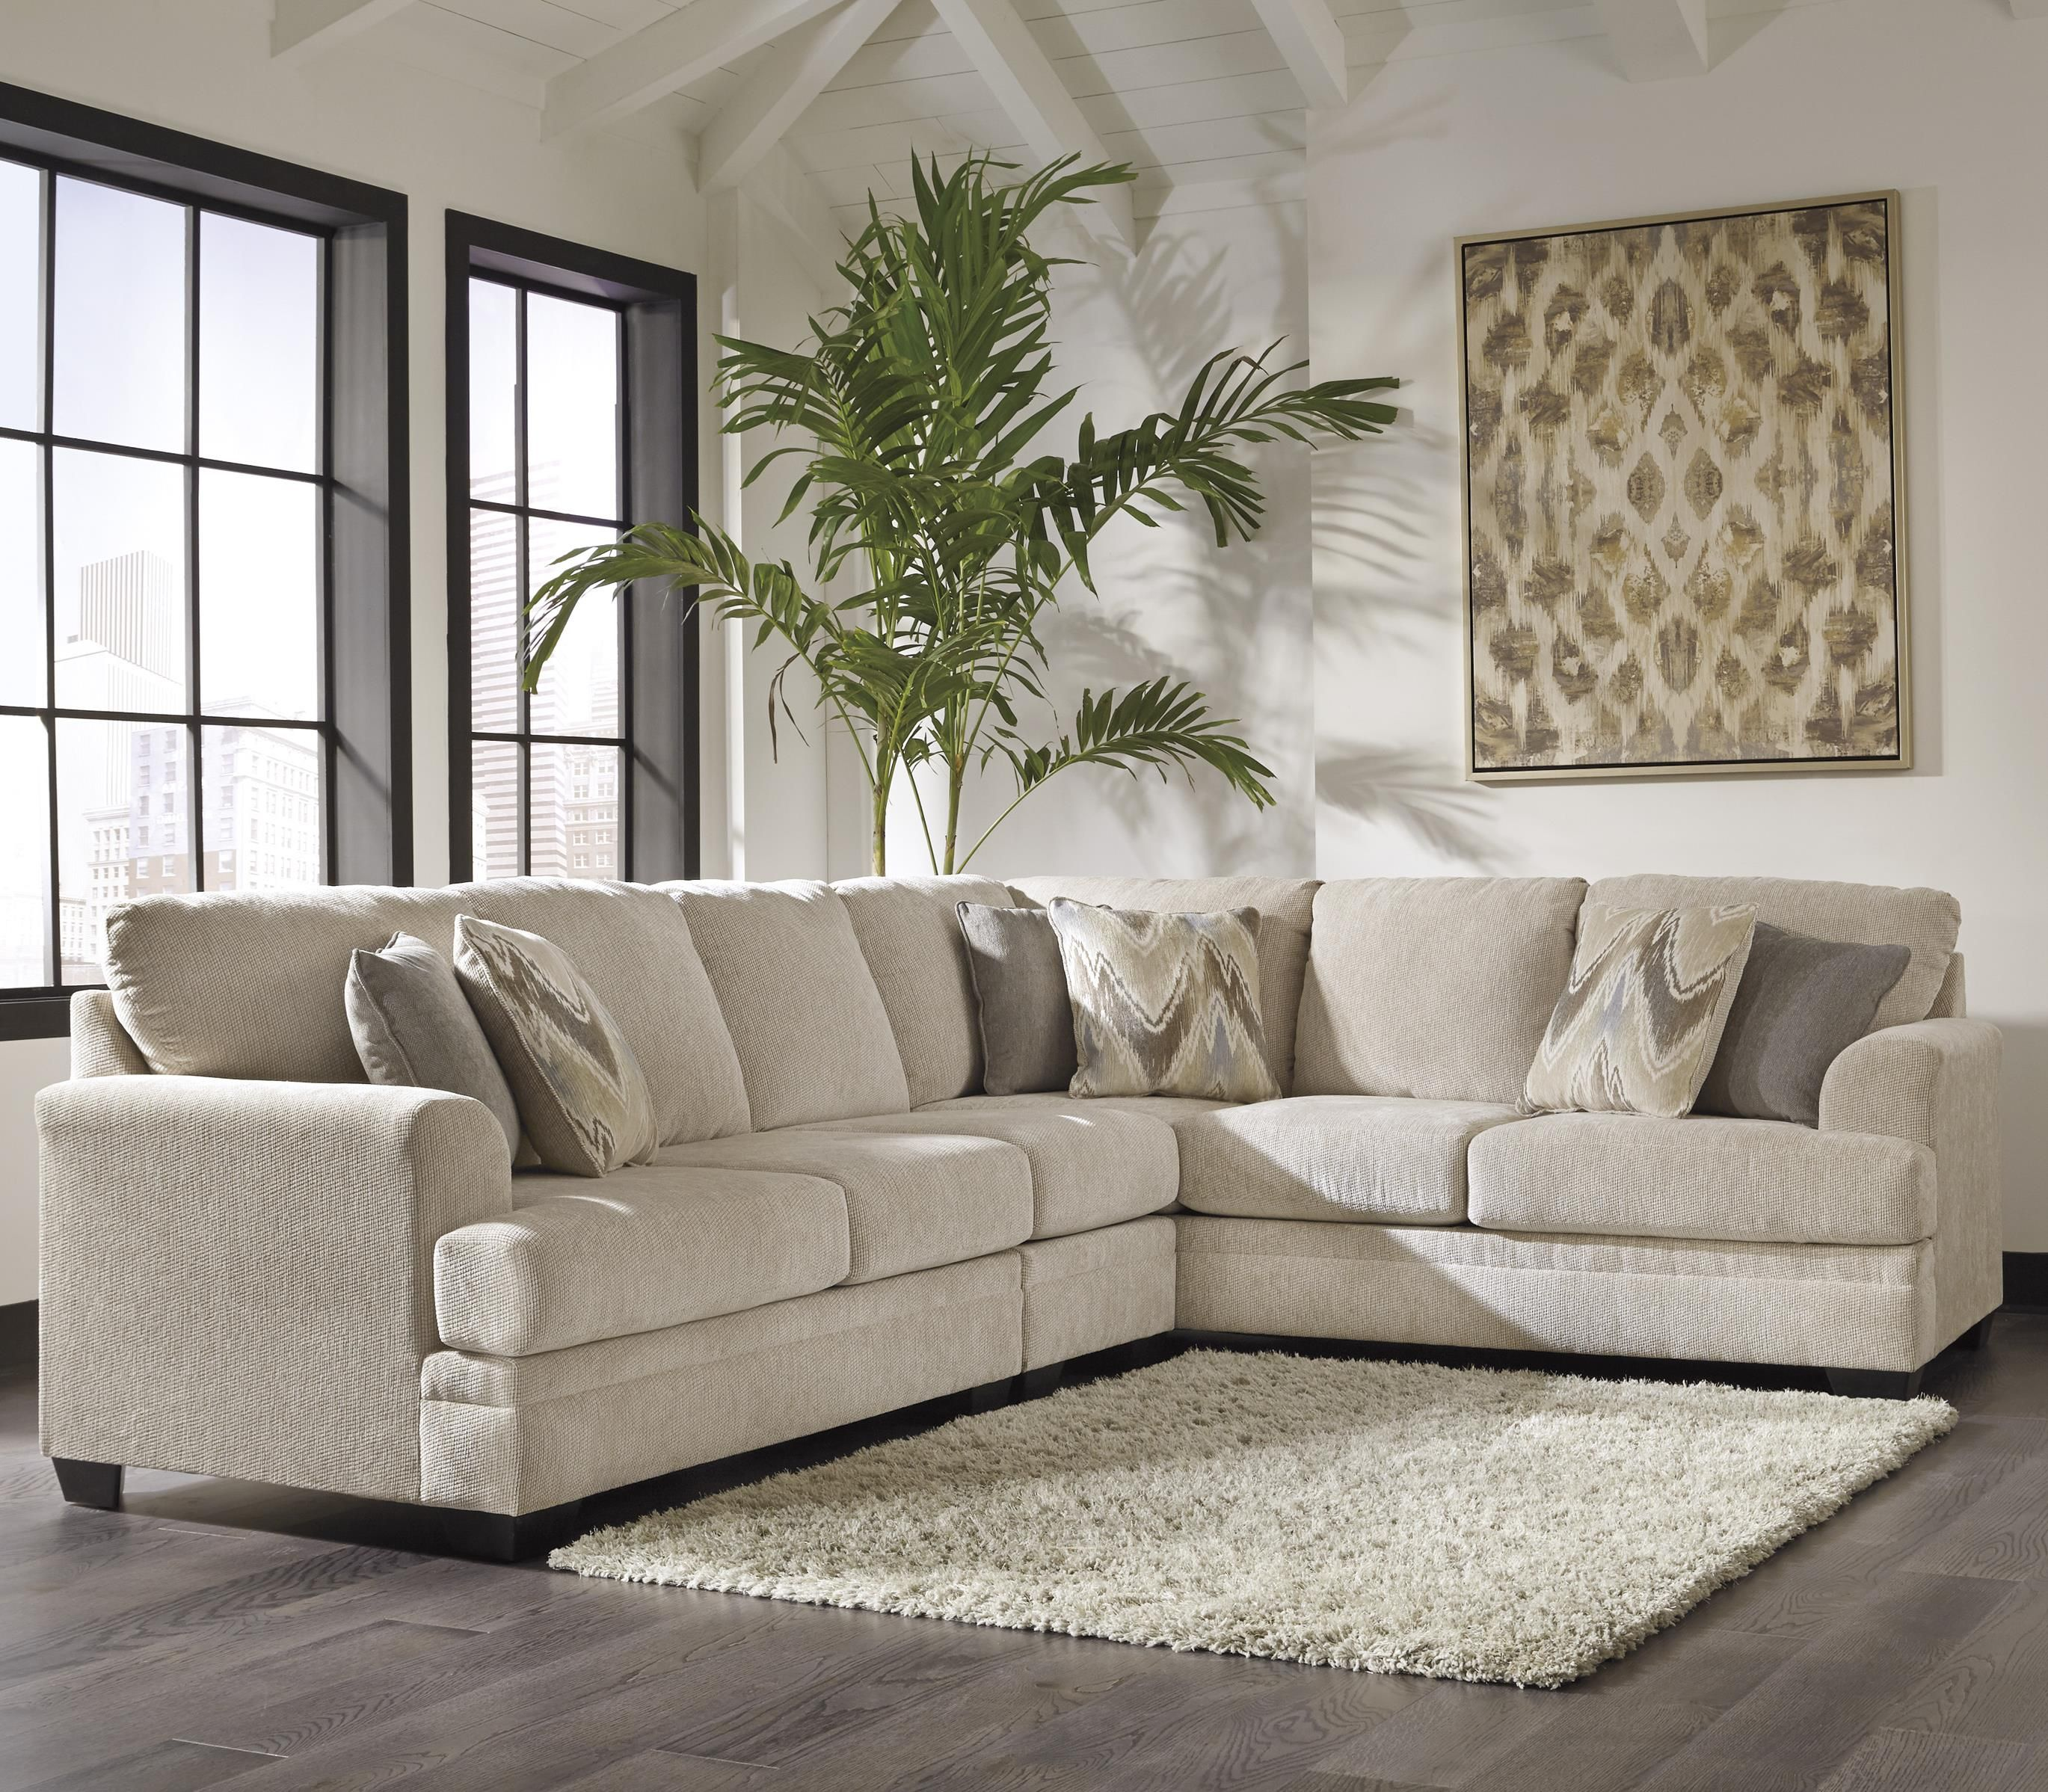 Excellent Ameer 3 Piece Sectional By Benchcraft Beach House Uwap Interior Chair Design Uwaporg